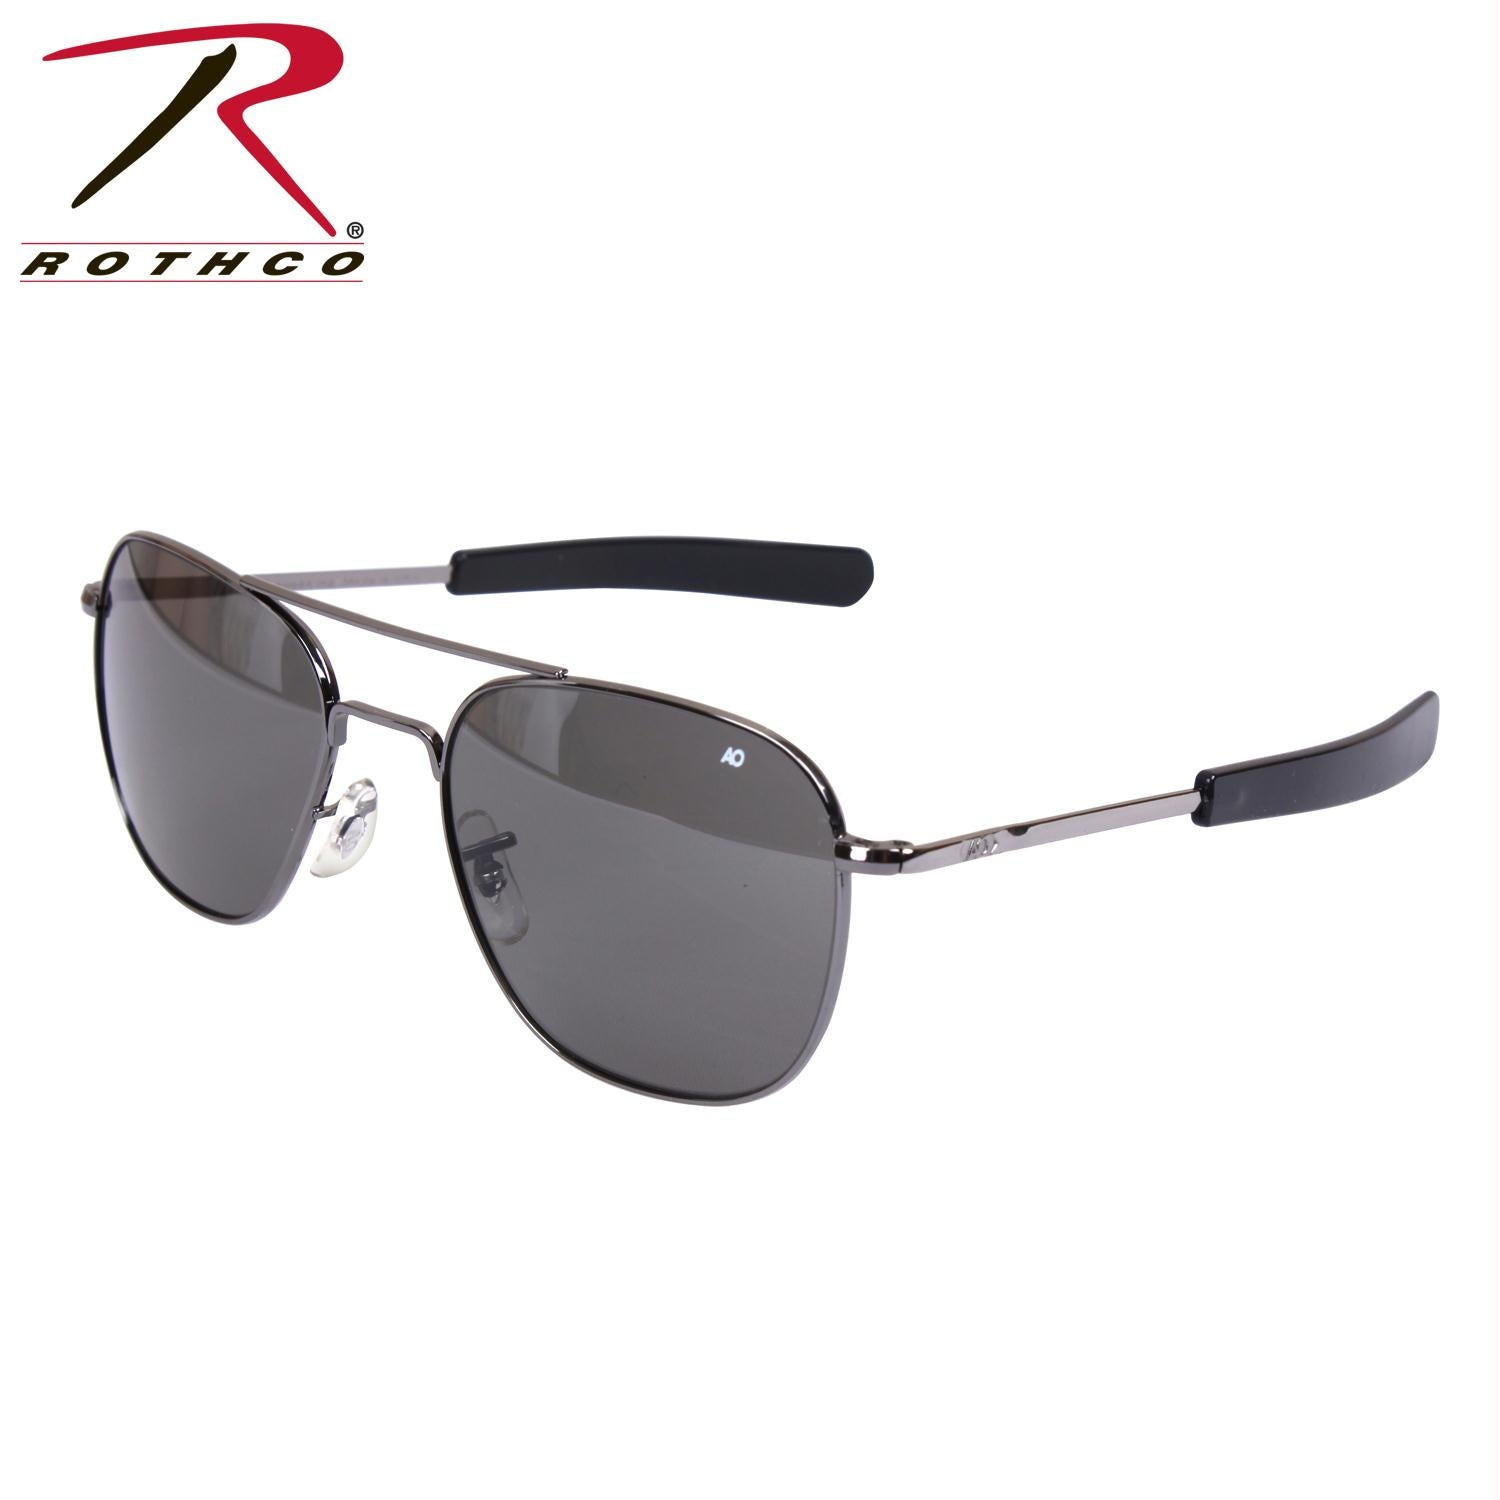 f3e14b63b42 American Optical Original Pilots Sunglasses - Wholesale Army Navy